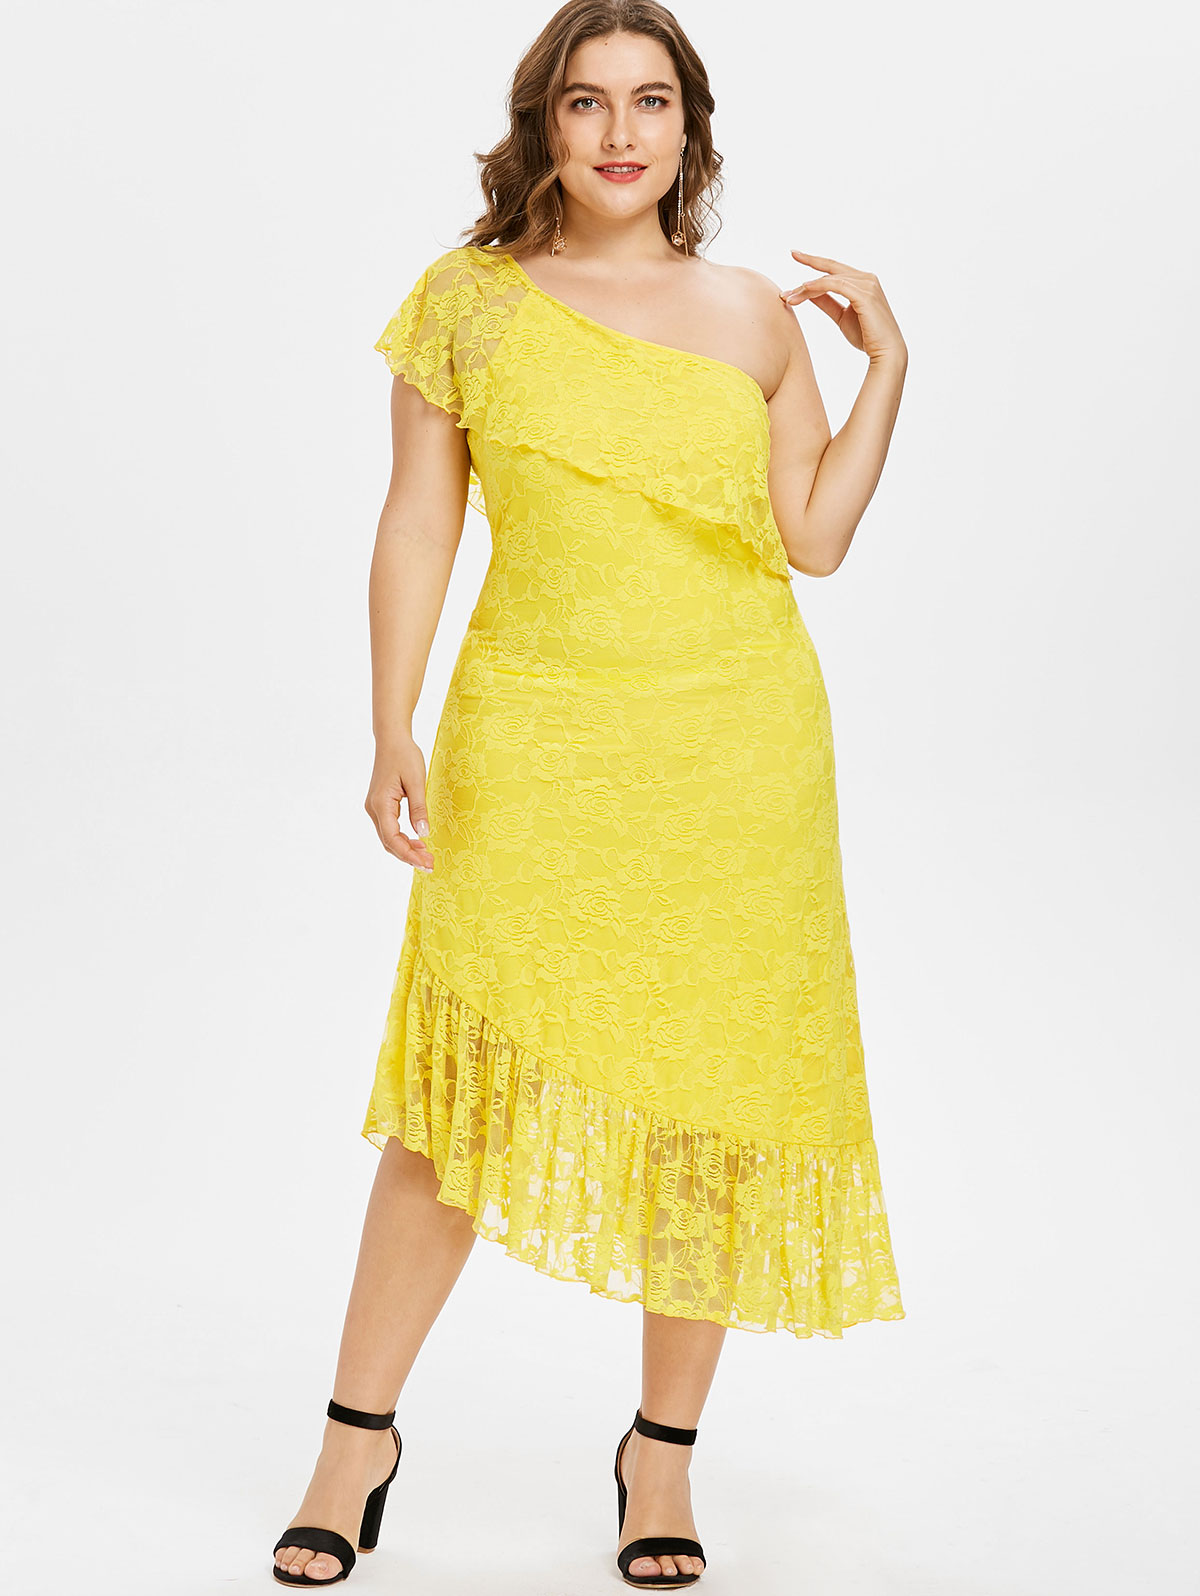 5XL Plus Size Asymmetric One Shoulder Yellow Lace Dress Ruffles Overlay Mid  Calf Short Sleeves Dress-in Dresses from Women s Clothing on Aliexpress.com  ... a9c020ba4